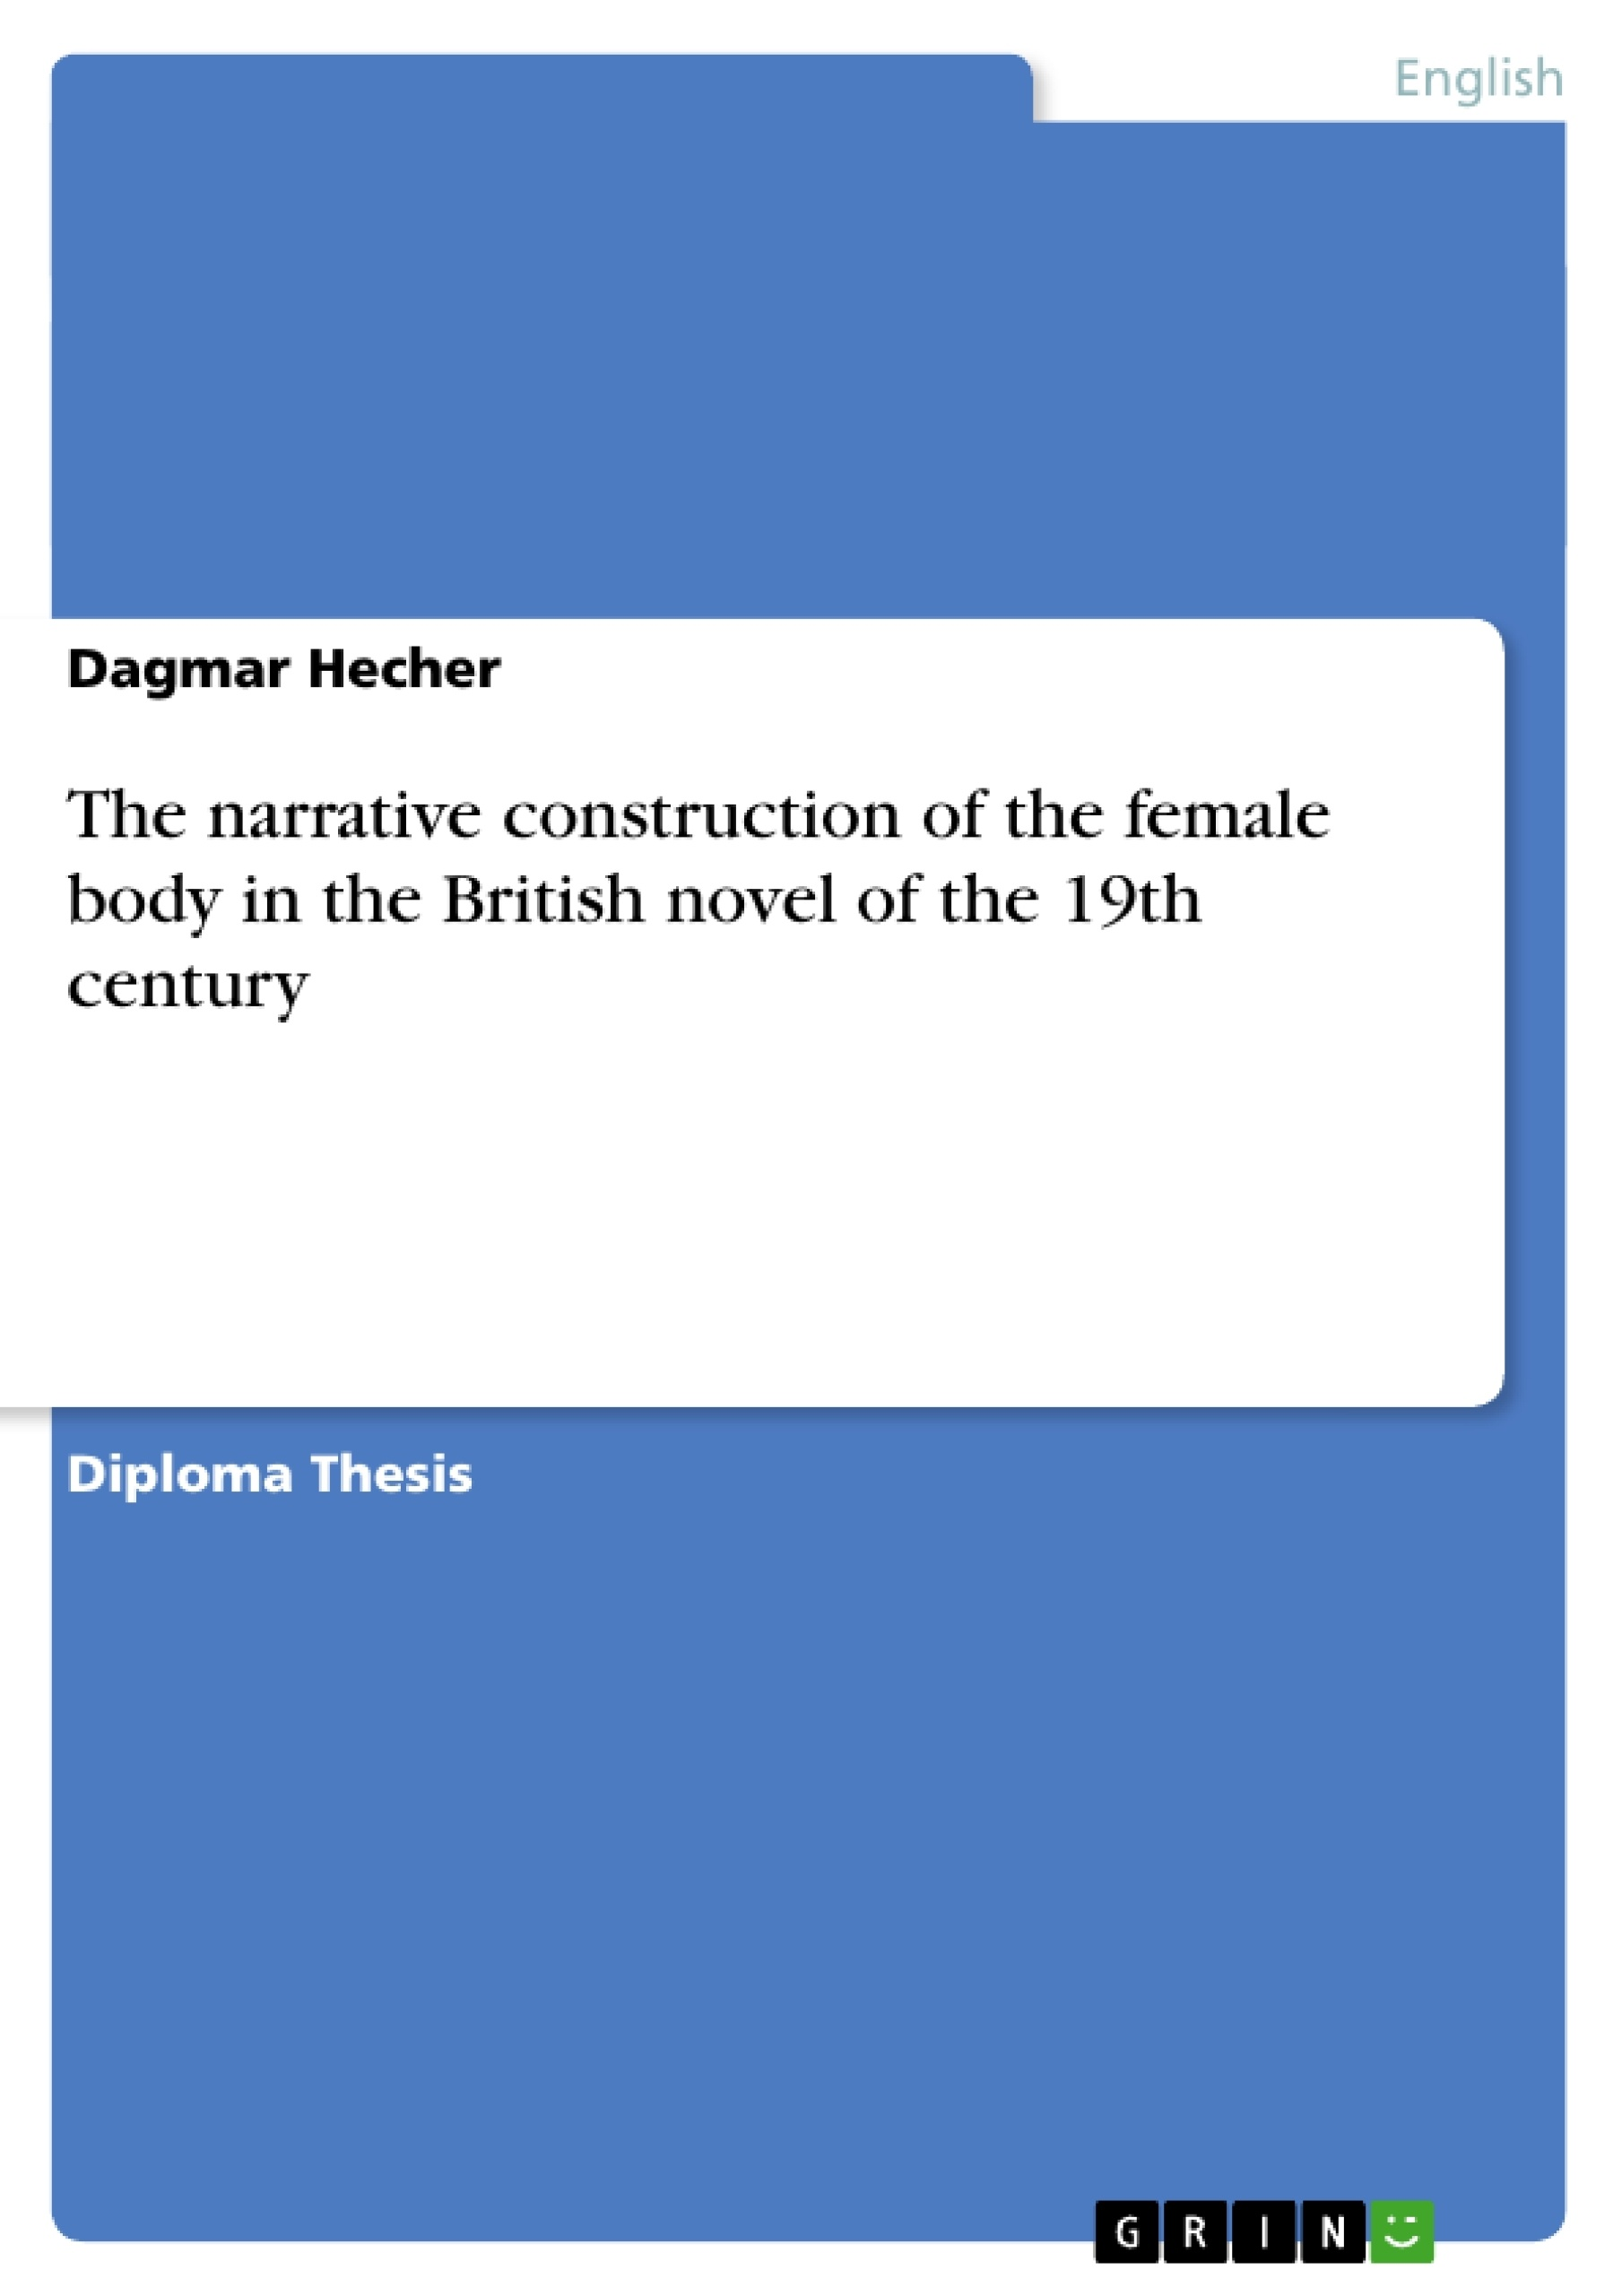 Title: The narrative construction of the female body in the British novel of the 19th century